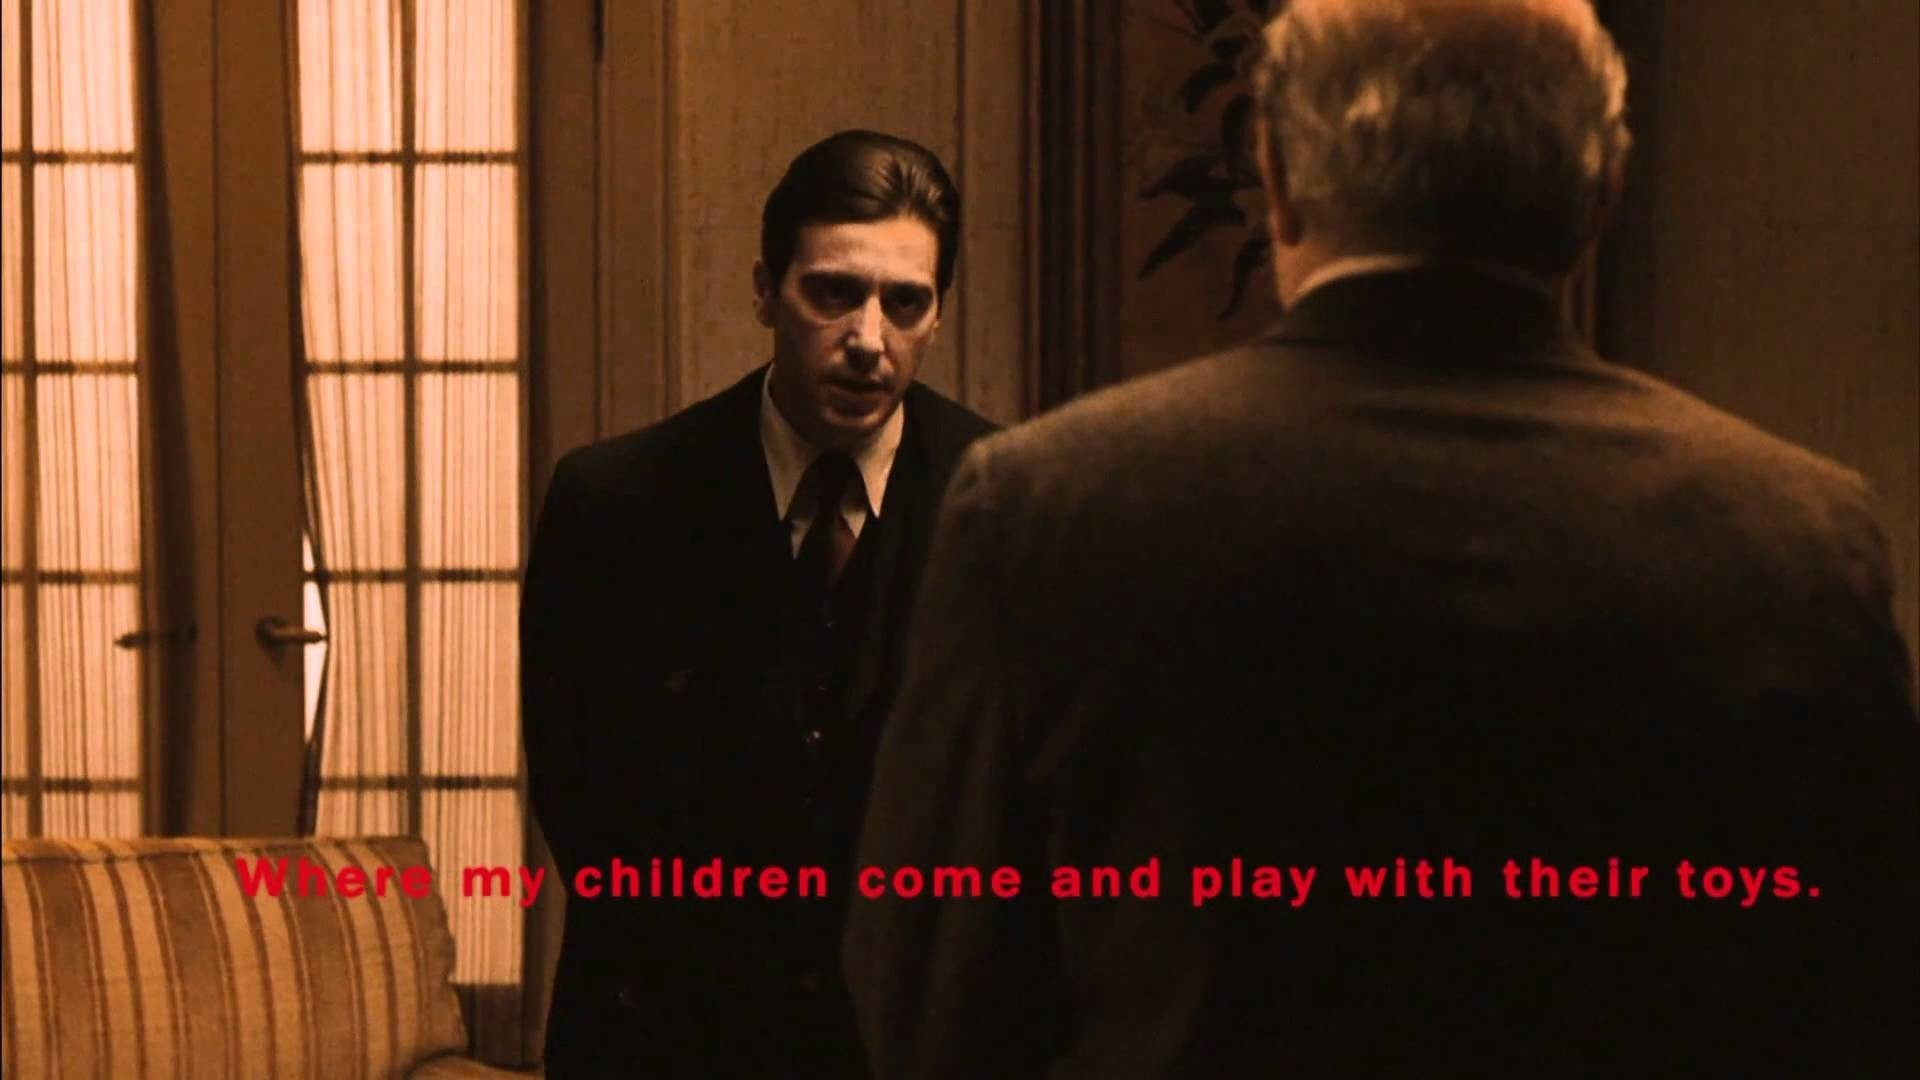 Res: 1920x1080,  Michael Corleone Wallpaper 1920×1080 The Godfather 2 Wallpapers  (46 Wallpapers)   Adorable Wallpapers   Desktop   Pinterest   The godfather,  ...